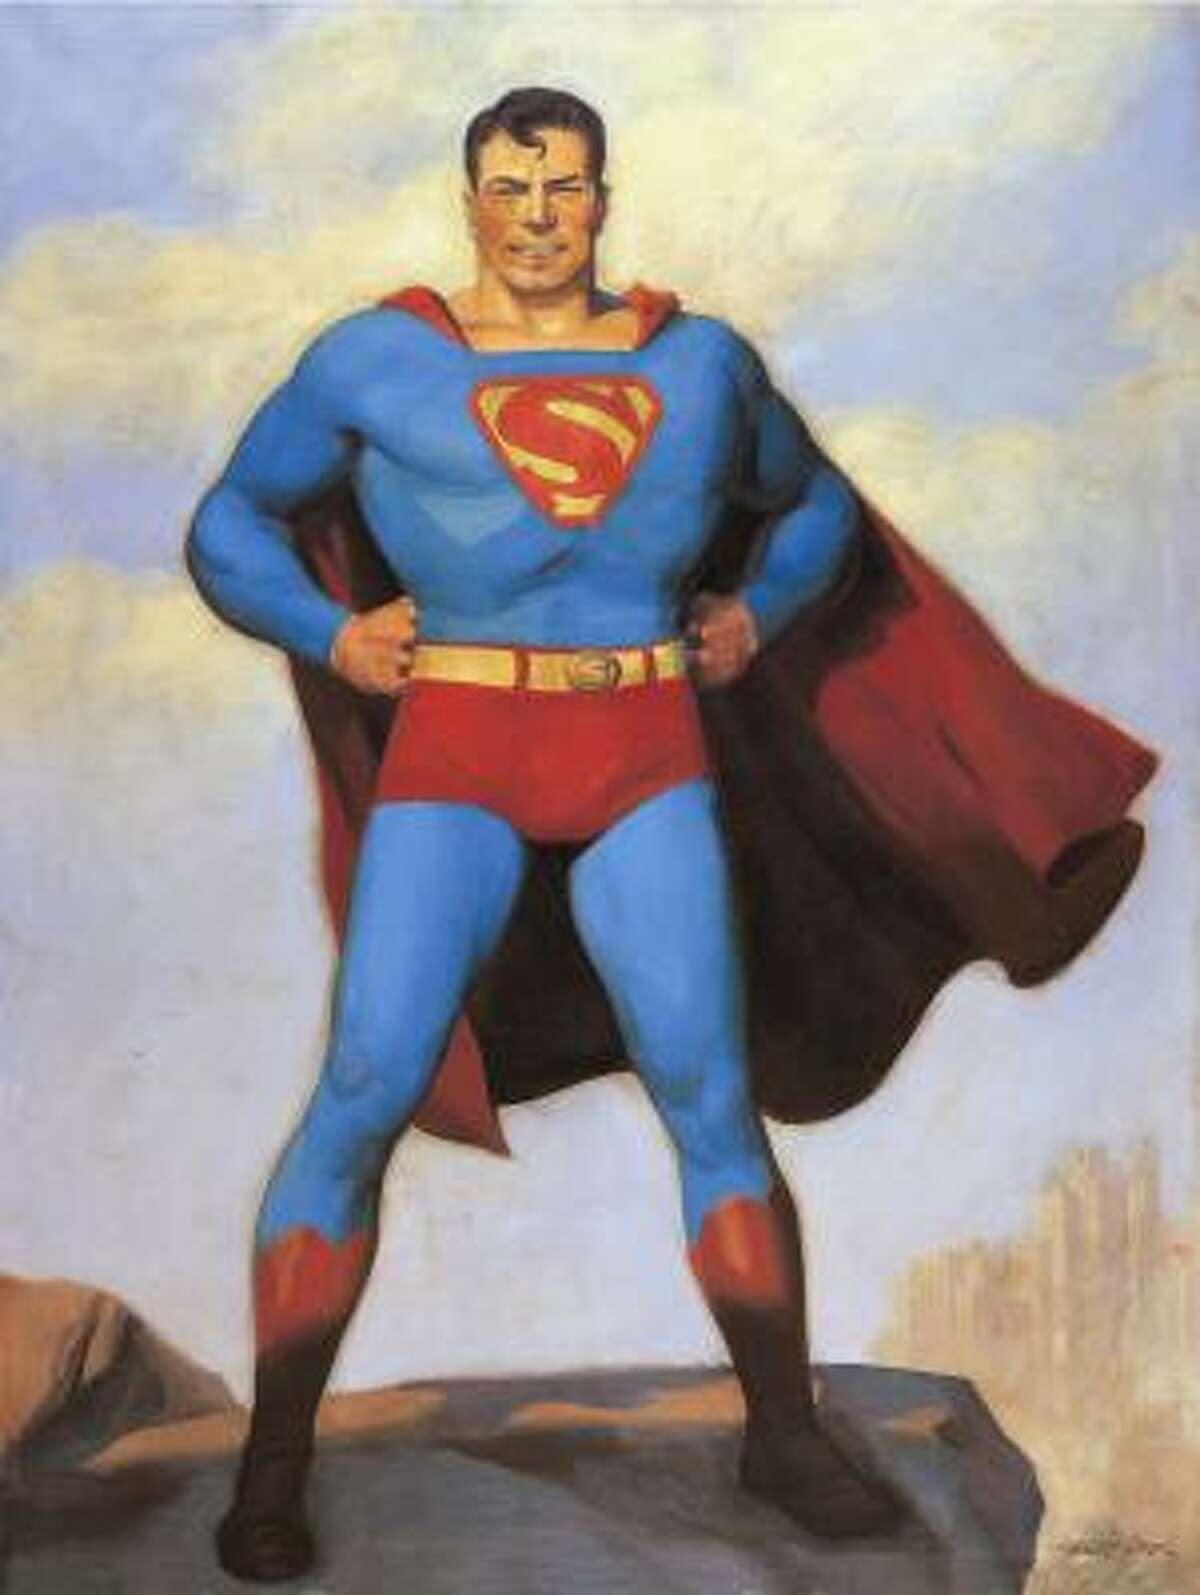 Superman, an alien who embraced the American way of life, is depicted in a 1940 painting by H.J. Ward in 75 Years of DC Comics: The Art of Modern Mythmaking.